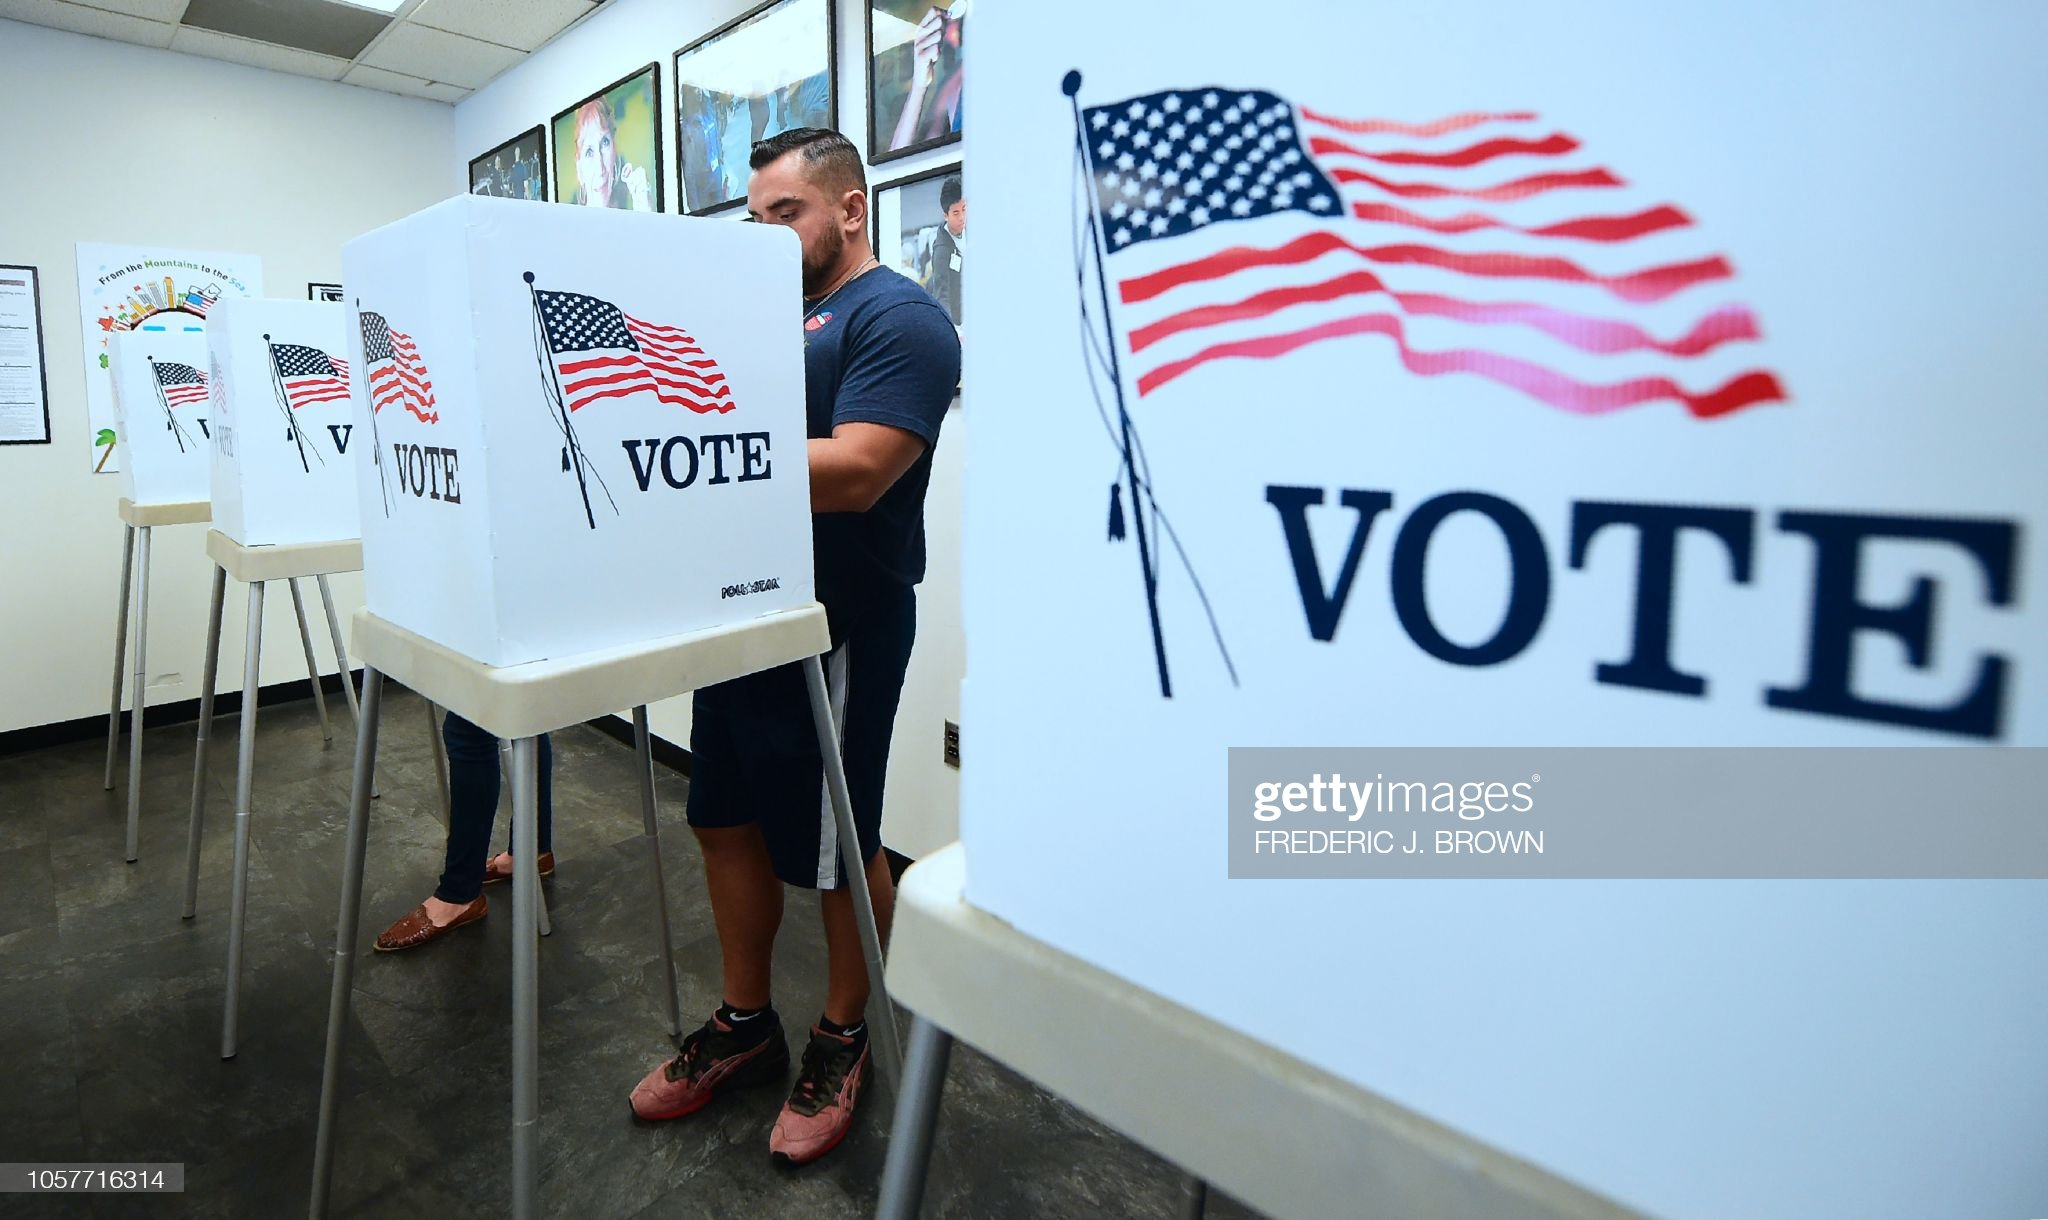 U.S. Presidential Election: Male voter at voting booth